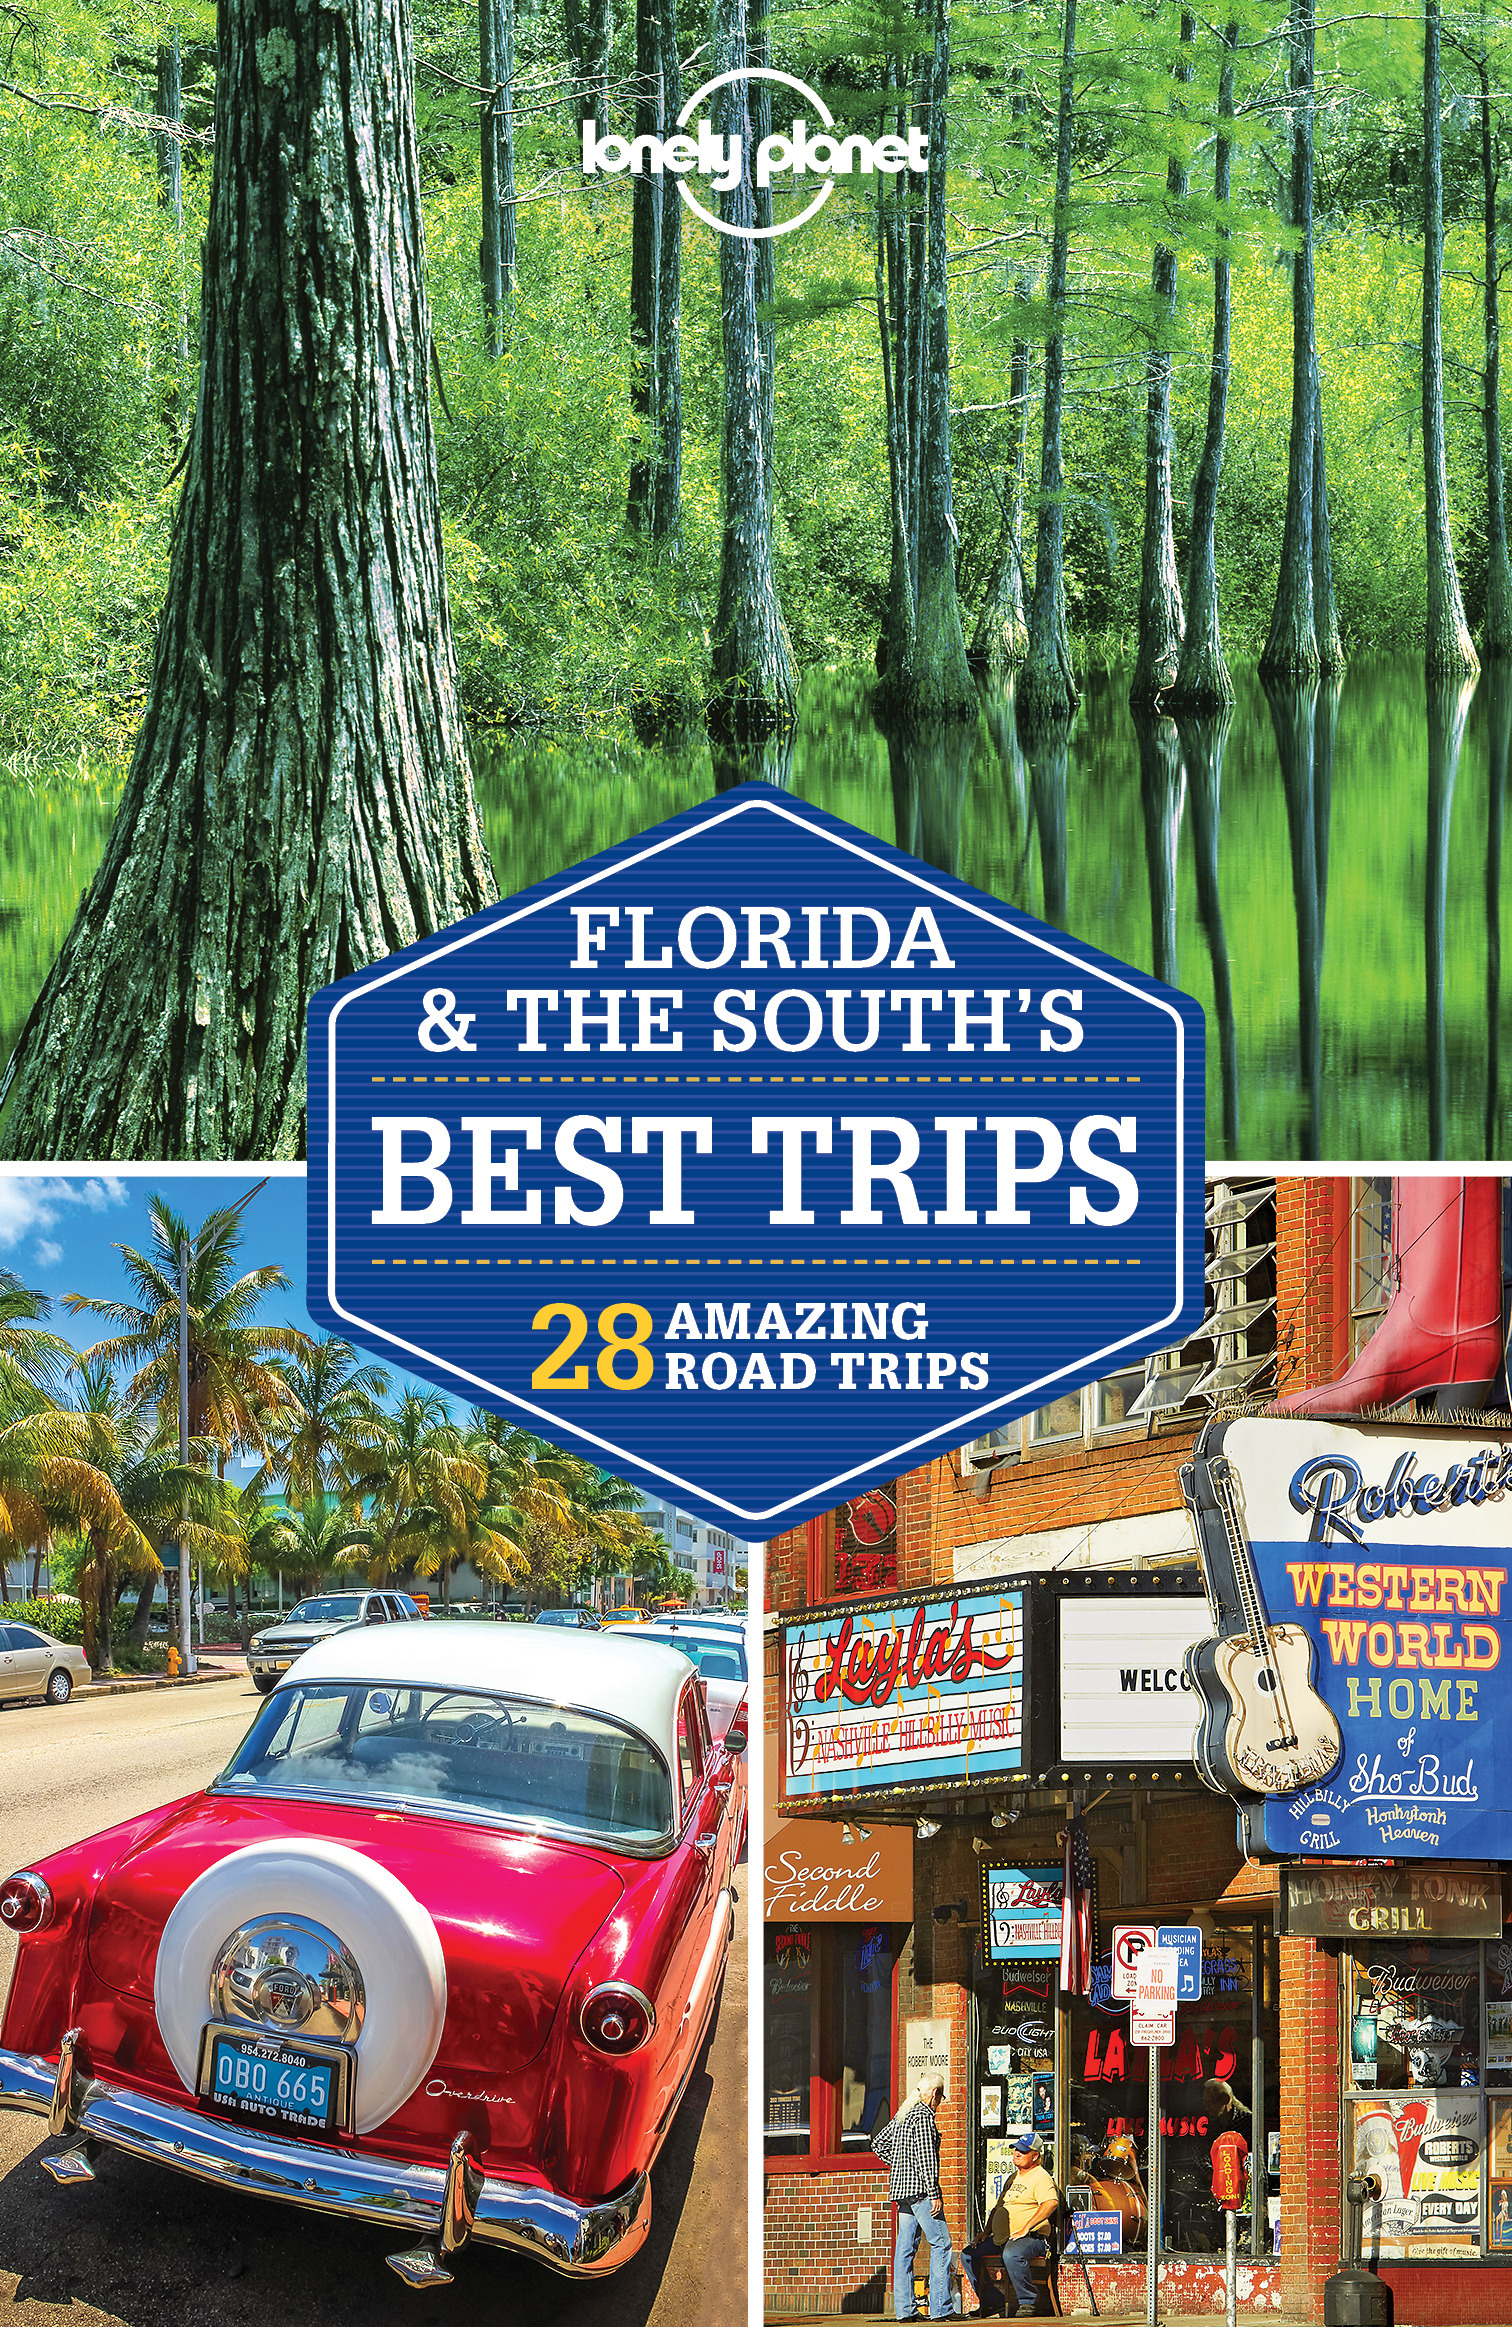 Armstrong, Kate - Lonely Planet Florida & the South's Best Trips, ebook